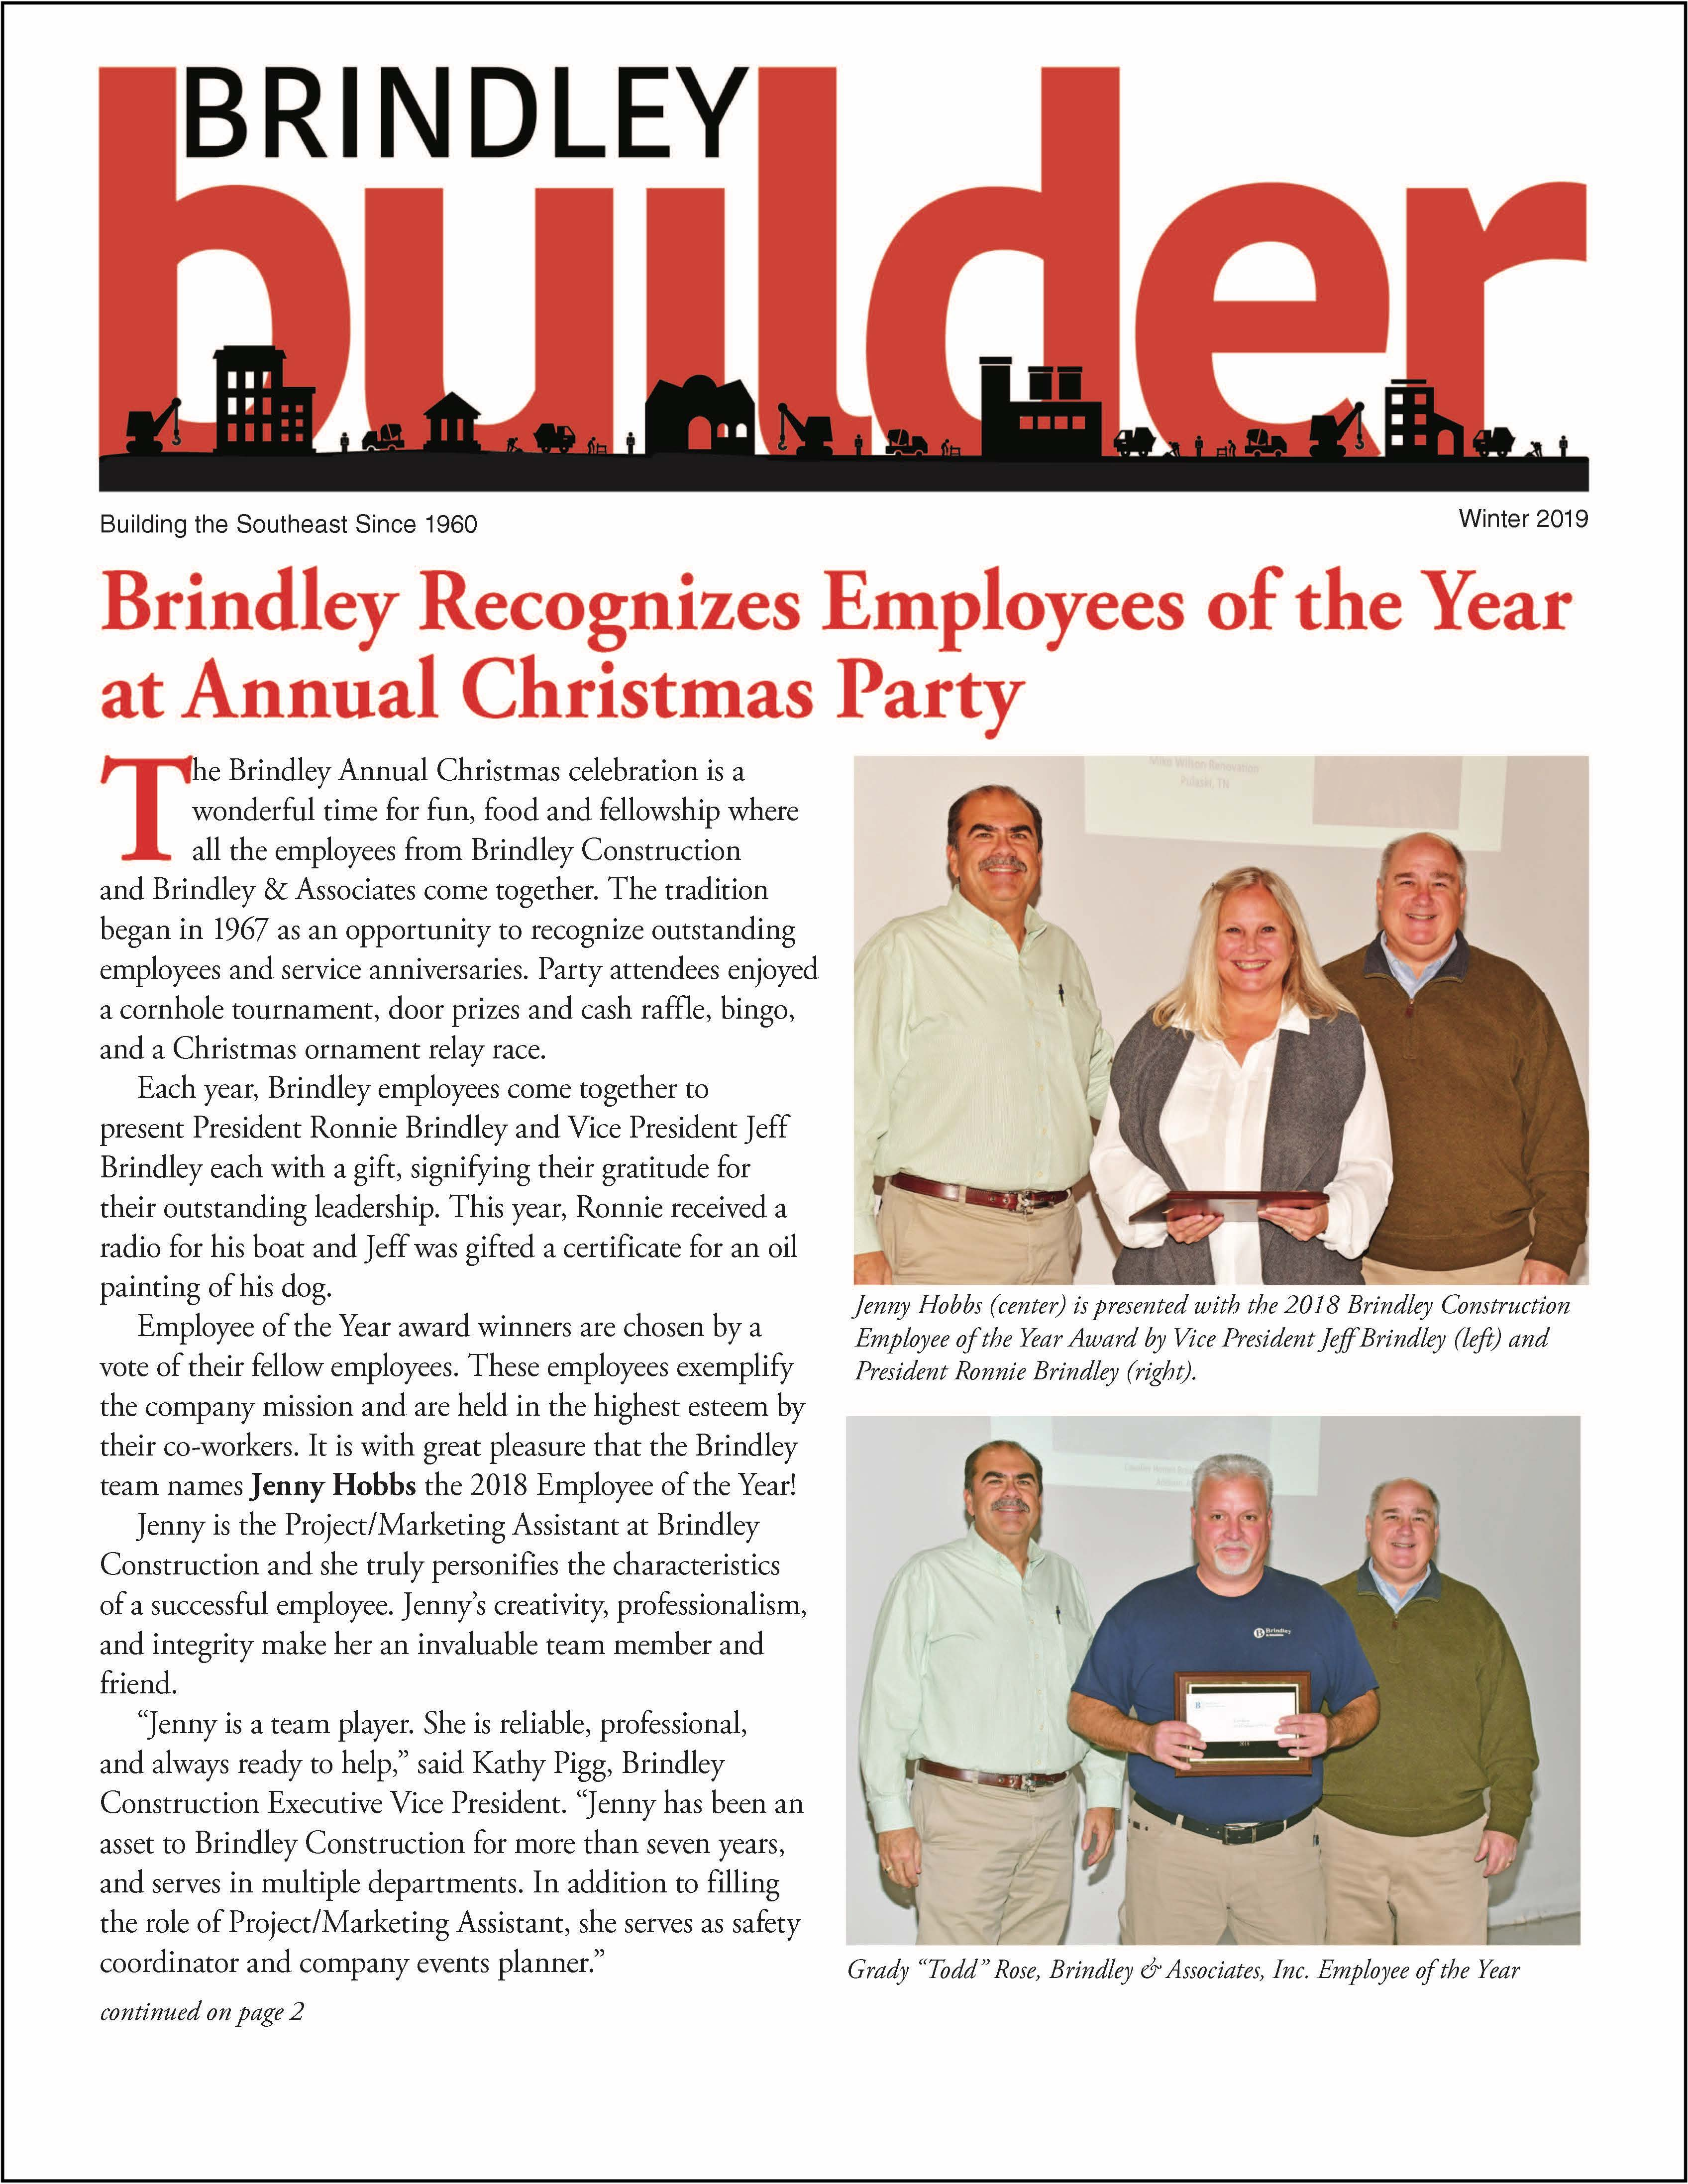 The Brindley Builder | Winter 2019 Issue | Brindley Construction